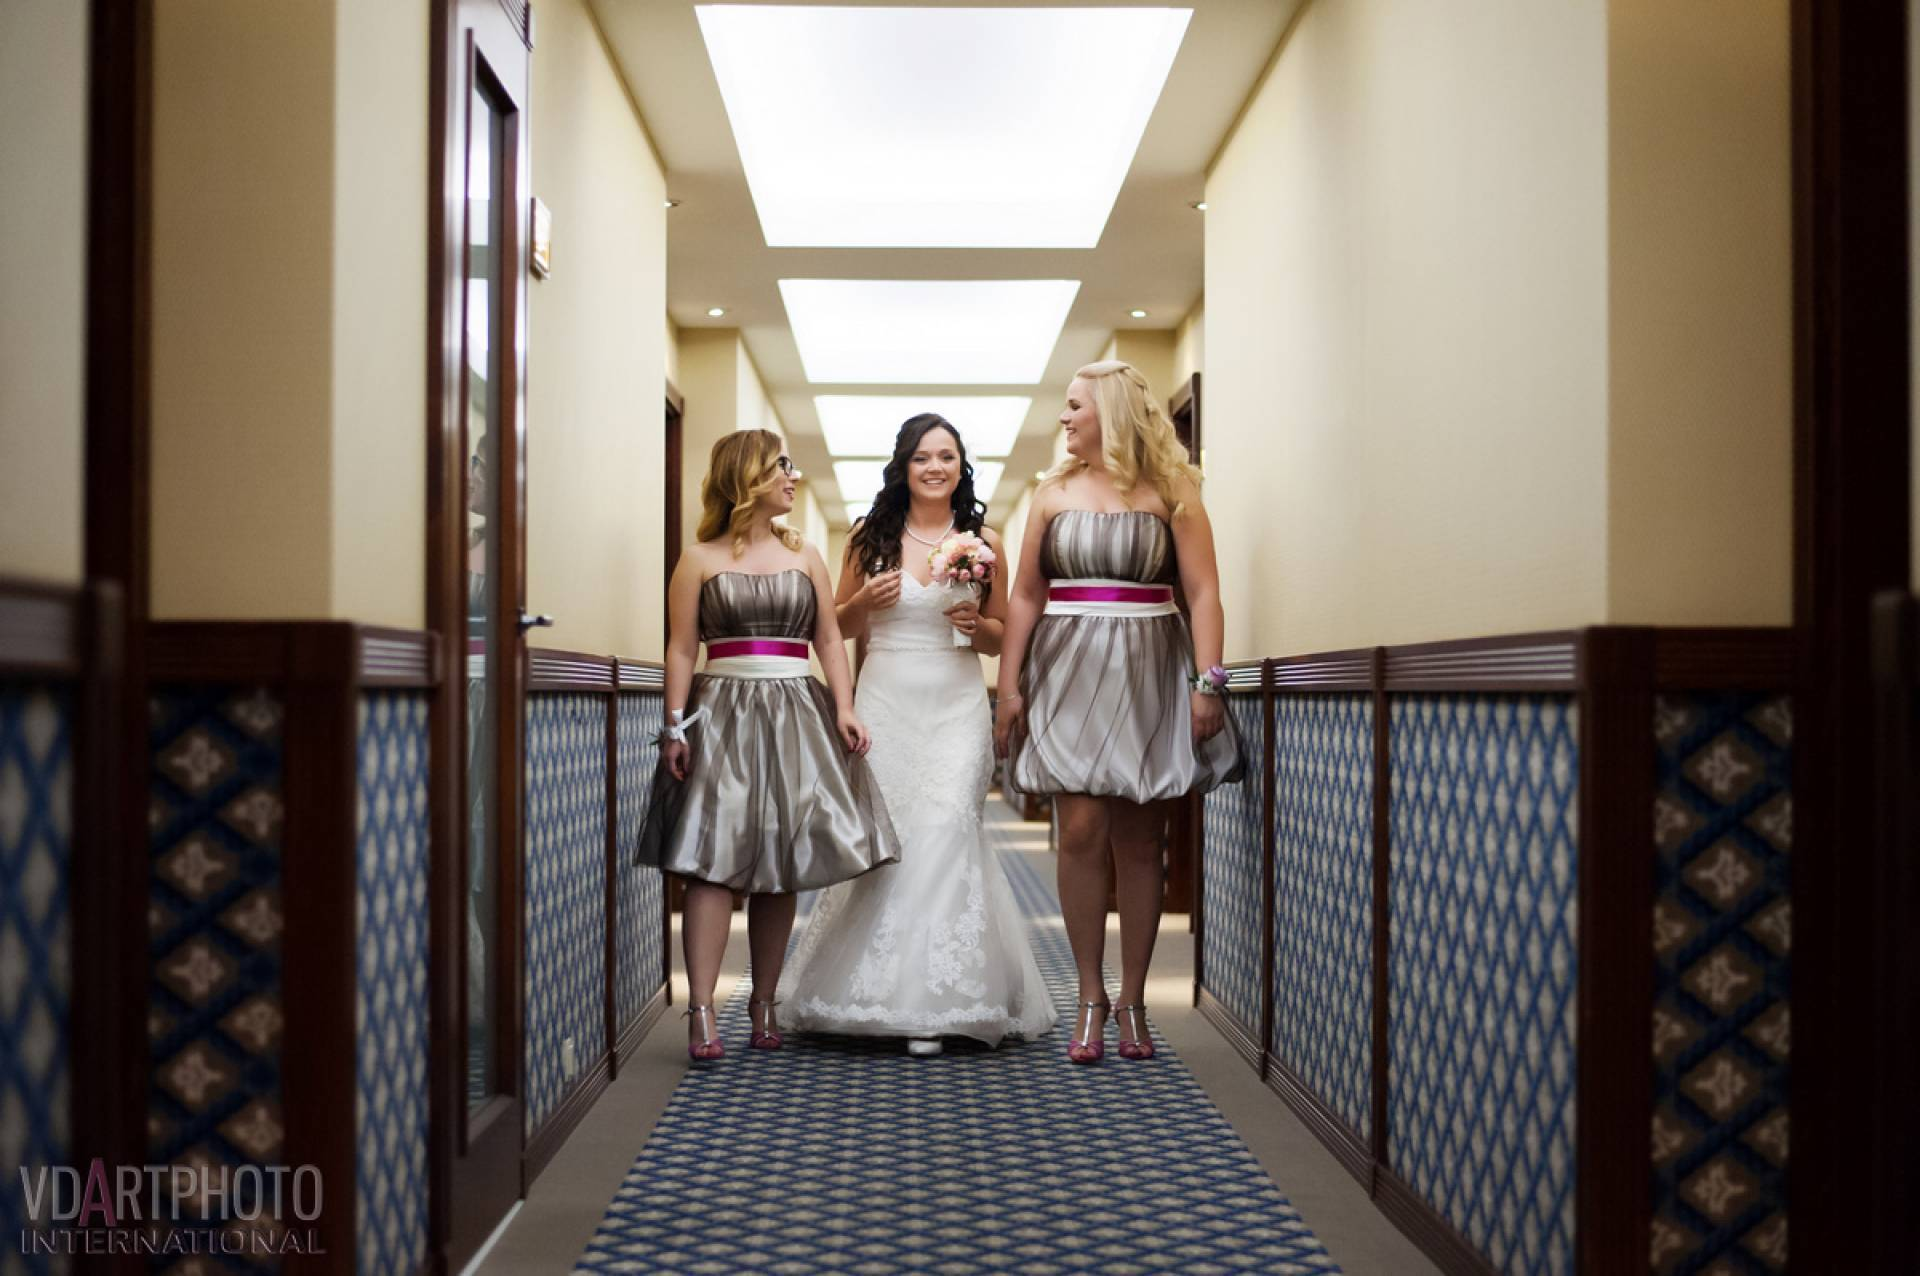 201509/Heni_Jani_wedding_retus00004_jpg.jpg -